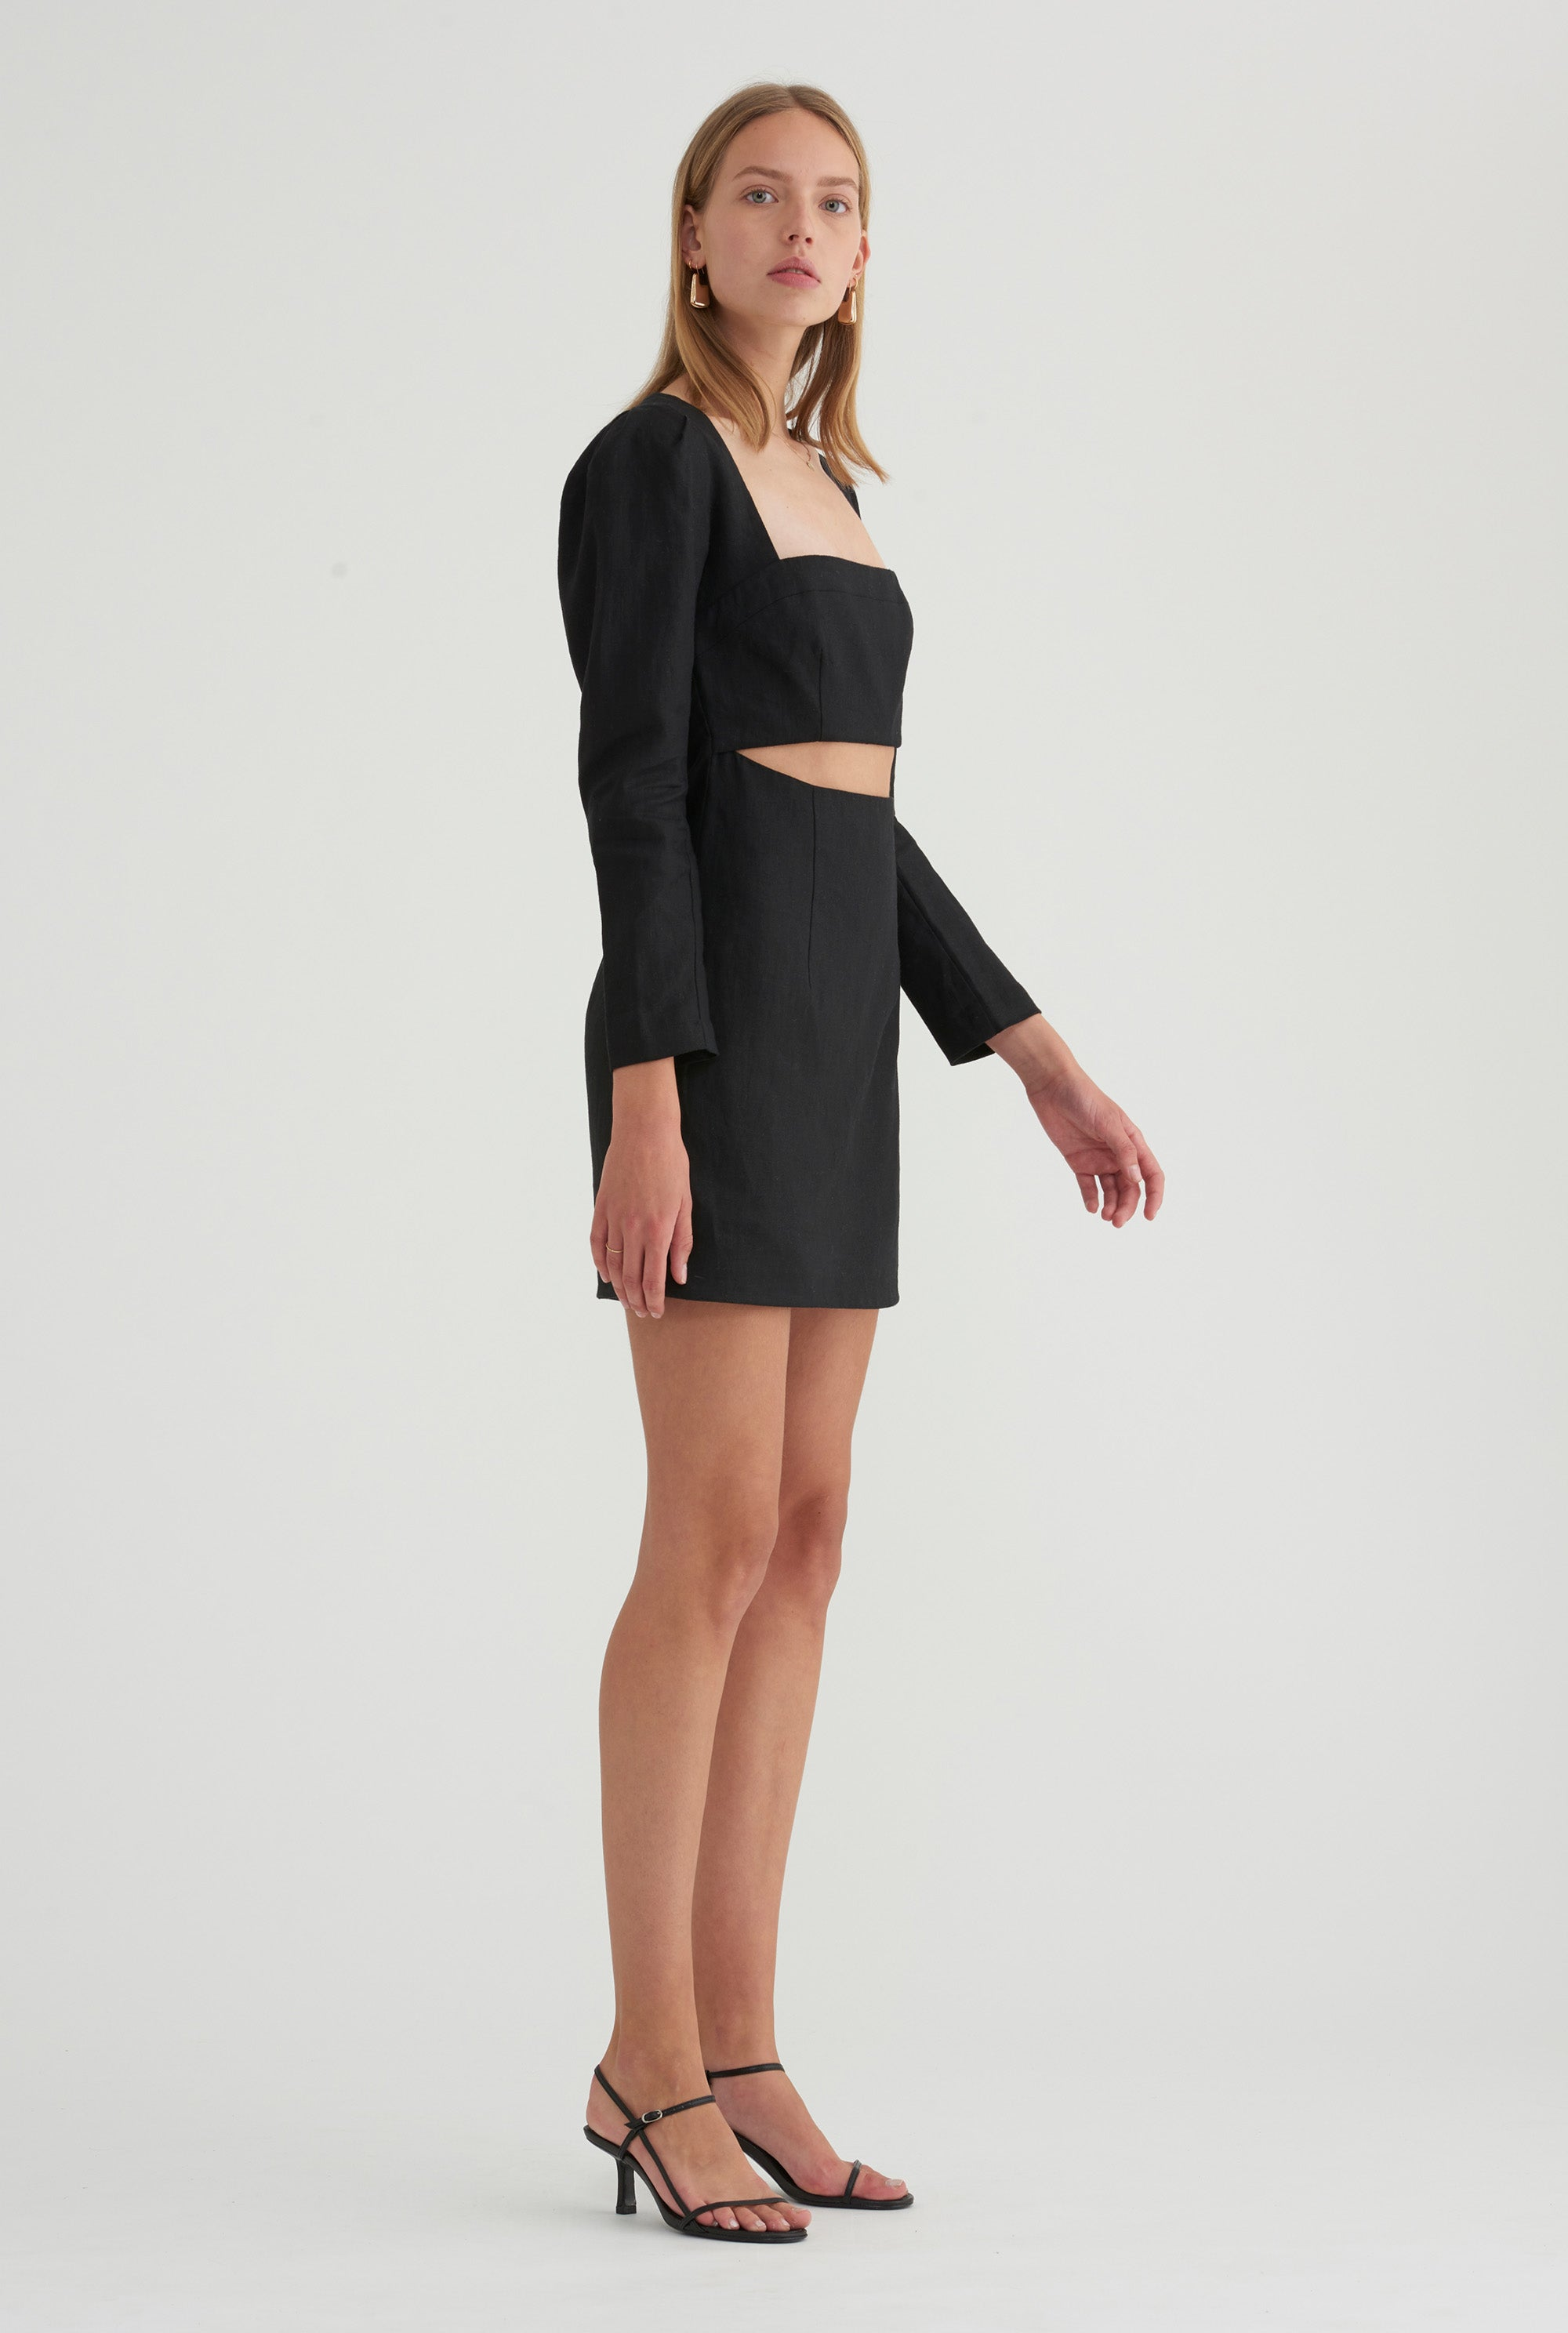 Linen Sleeved Dress - Black